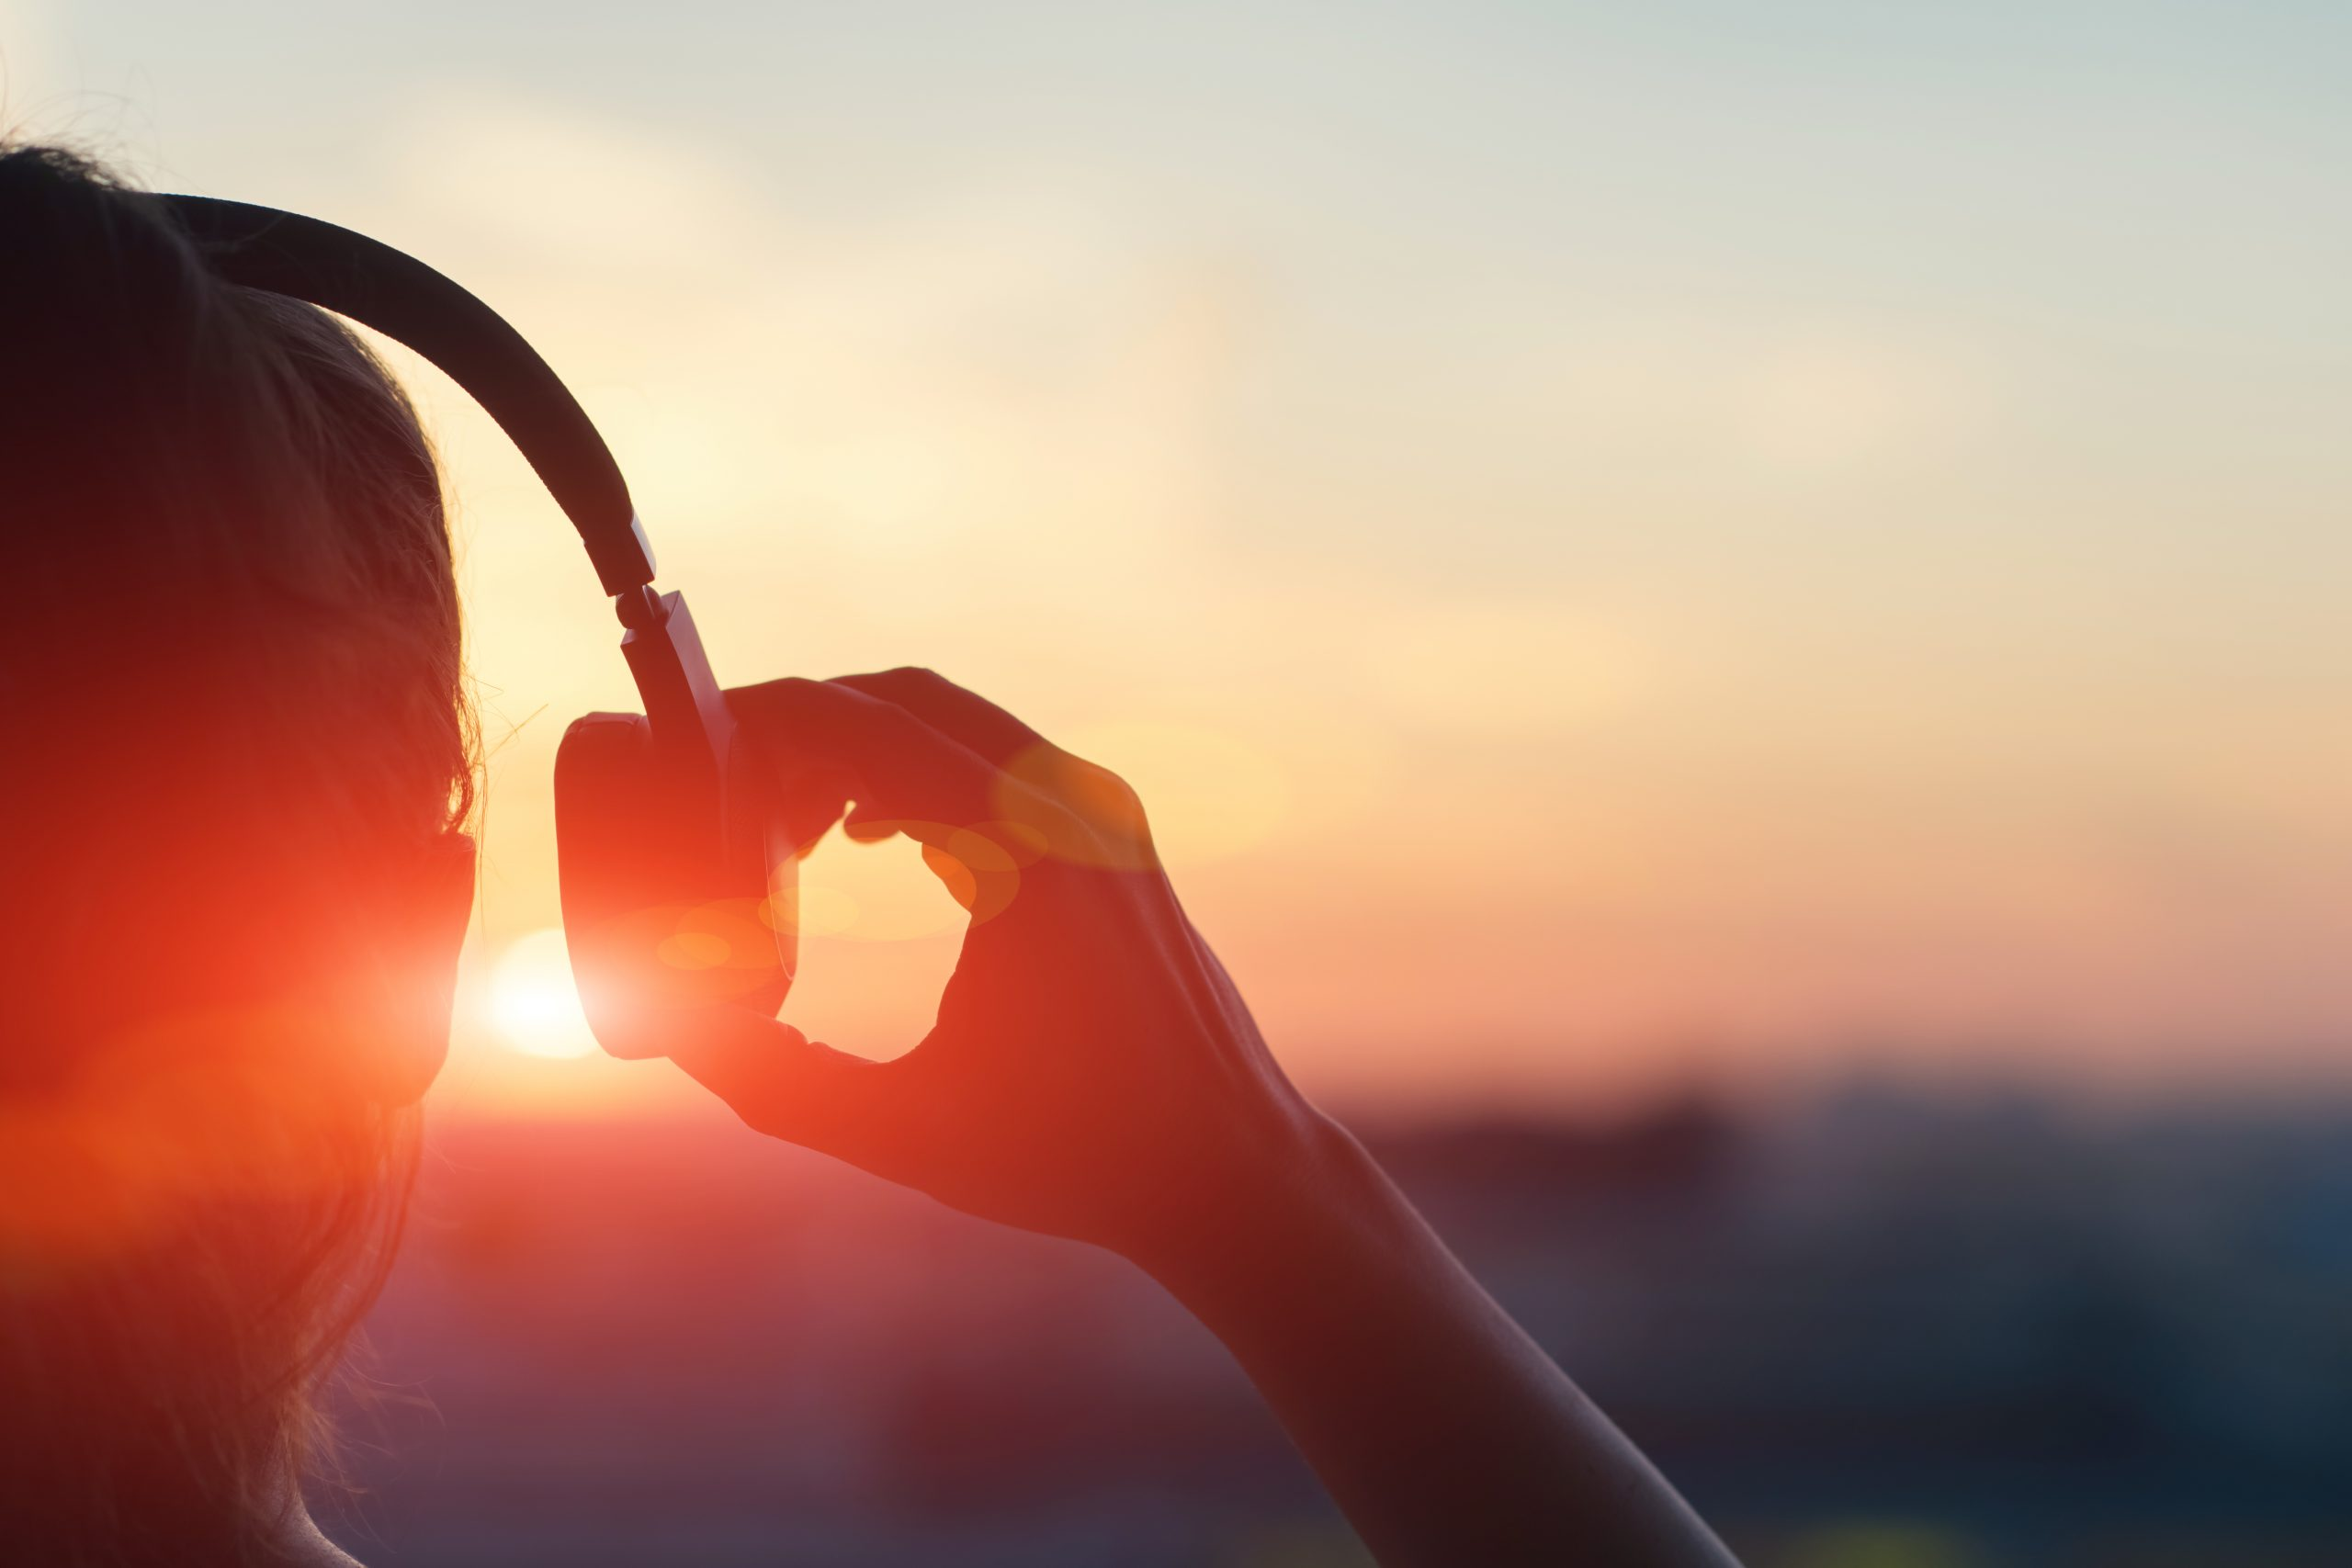 half of a head wearing headphones as they watch the sunrise